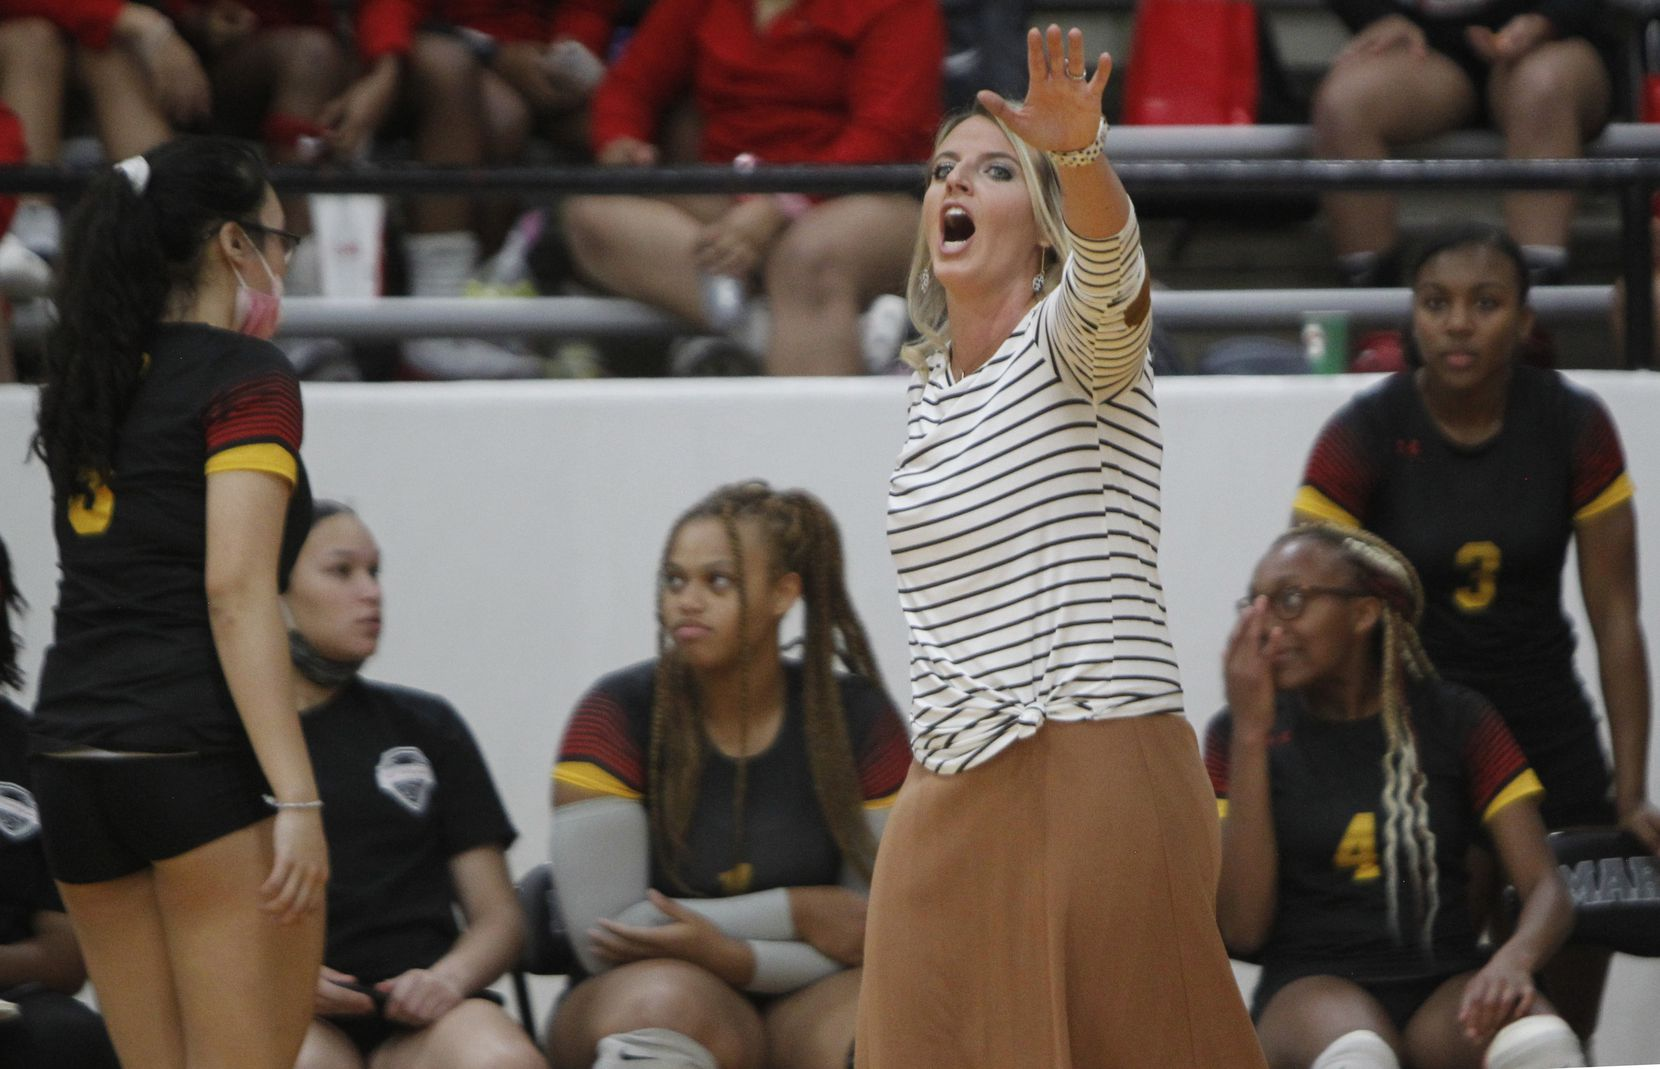 South Grand Prairie head coach Lindsay Fallen reacts to a call during the 3rd set of their match against Arlington Martin. The two teams played their volleyball match at Arlington Martin High School in Arlington on September 14, 2021. (Steve Hamm/ Special Contributor)